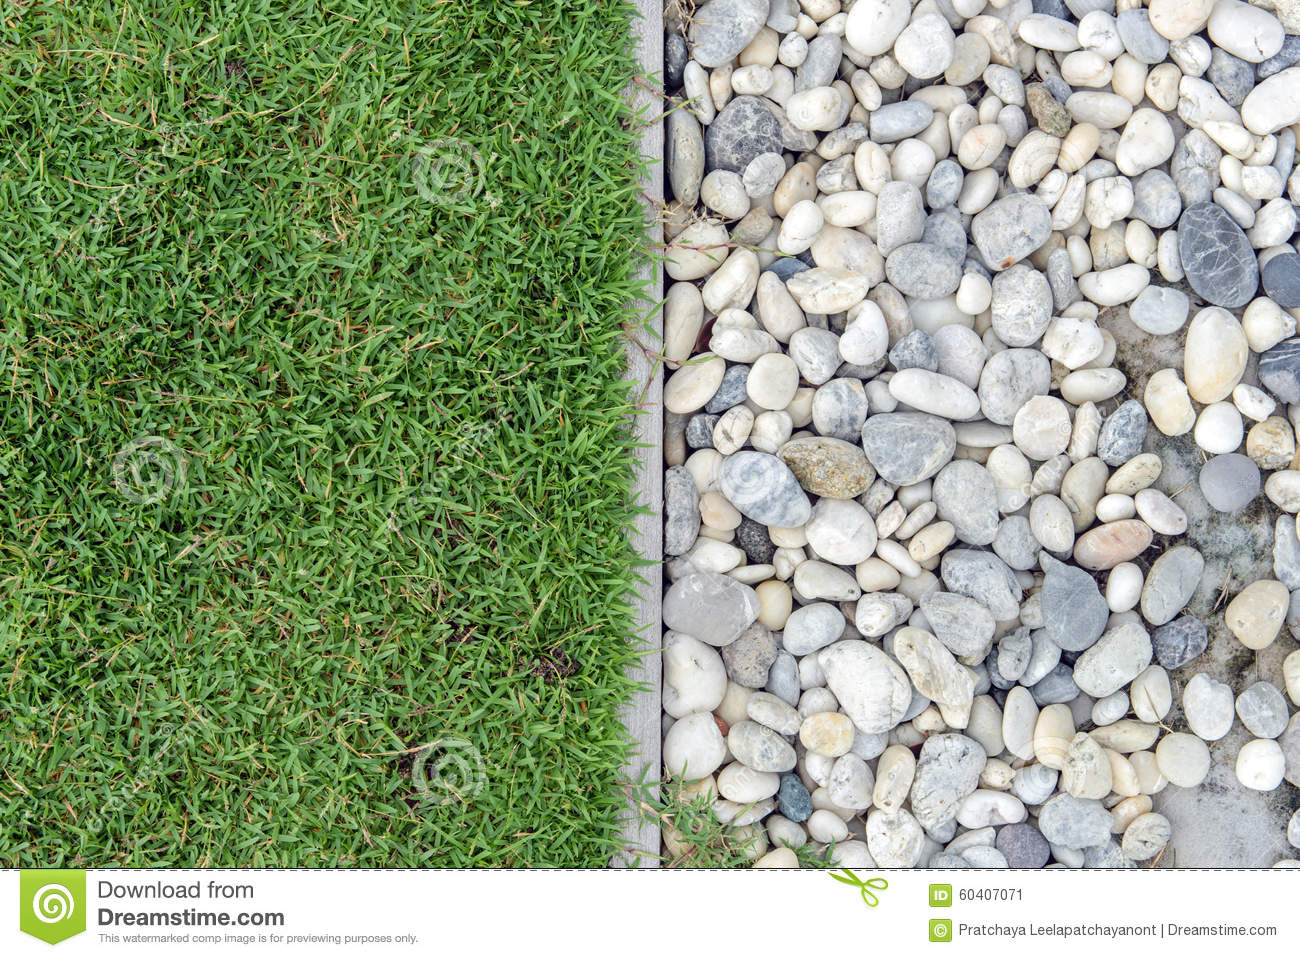 Pebble Garden Green Grass With Pebbles Stone And Grass In Garden Grass With